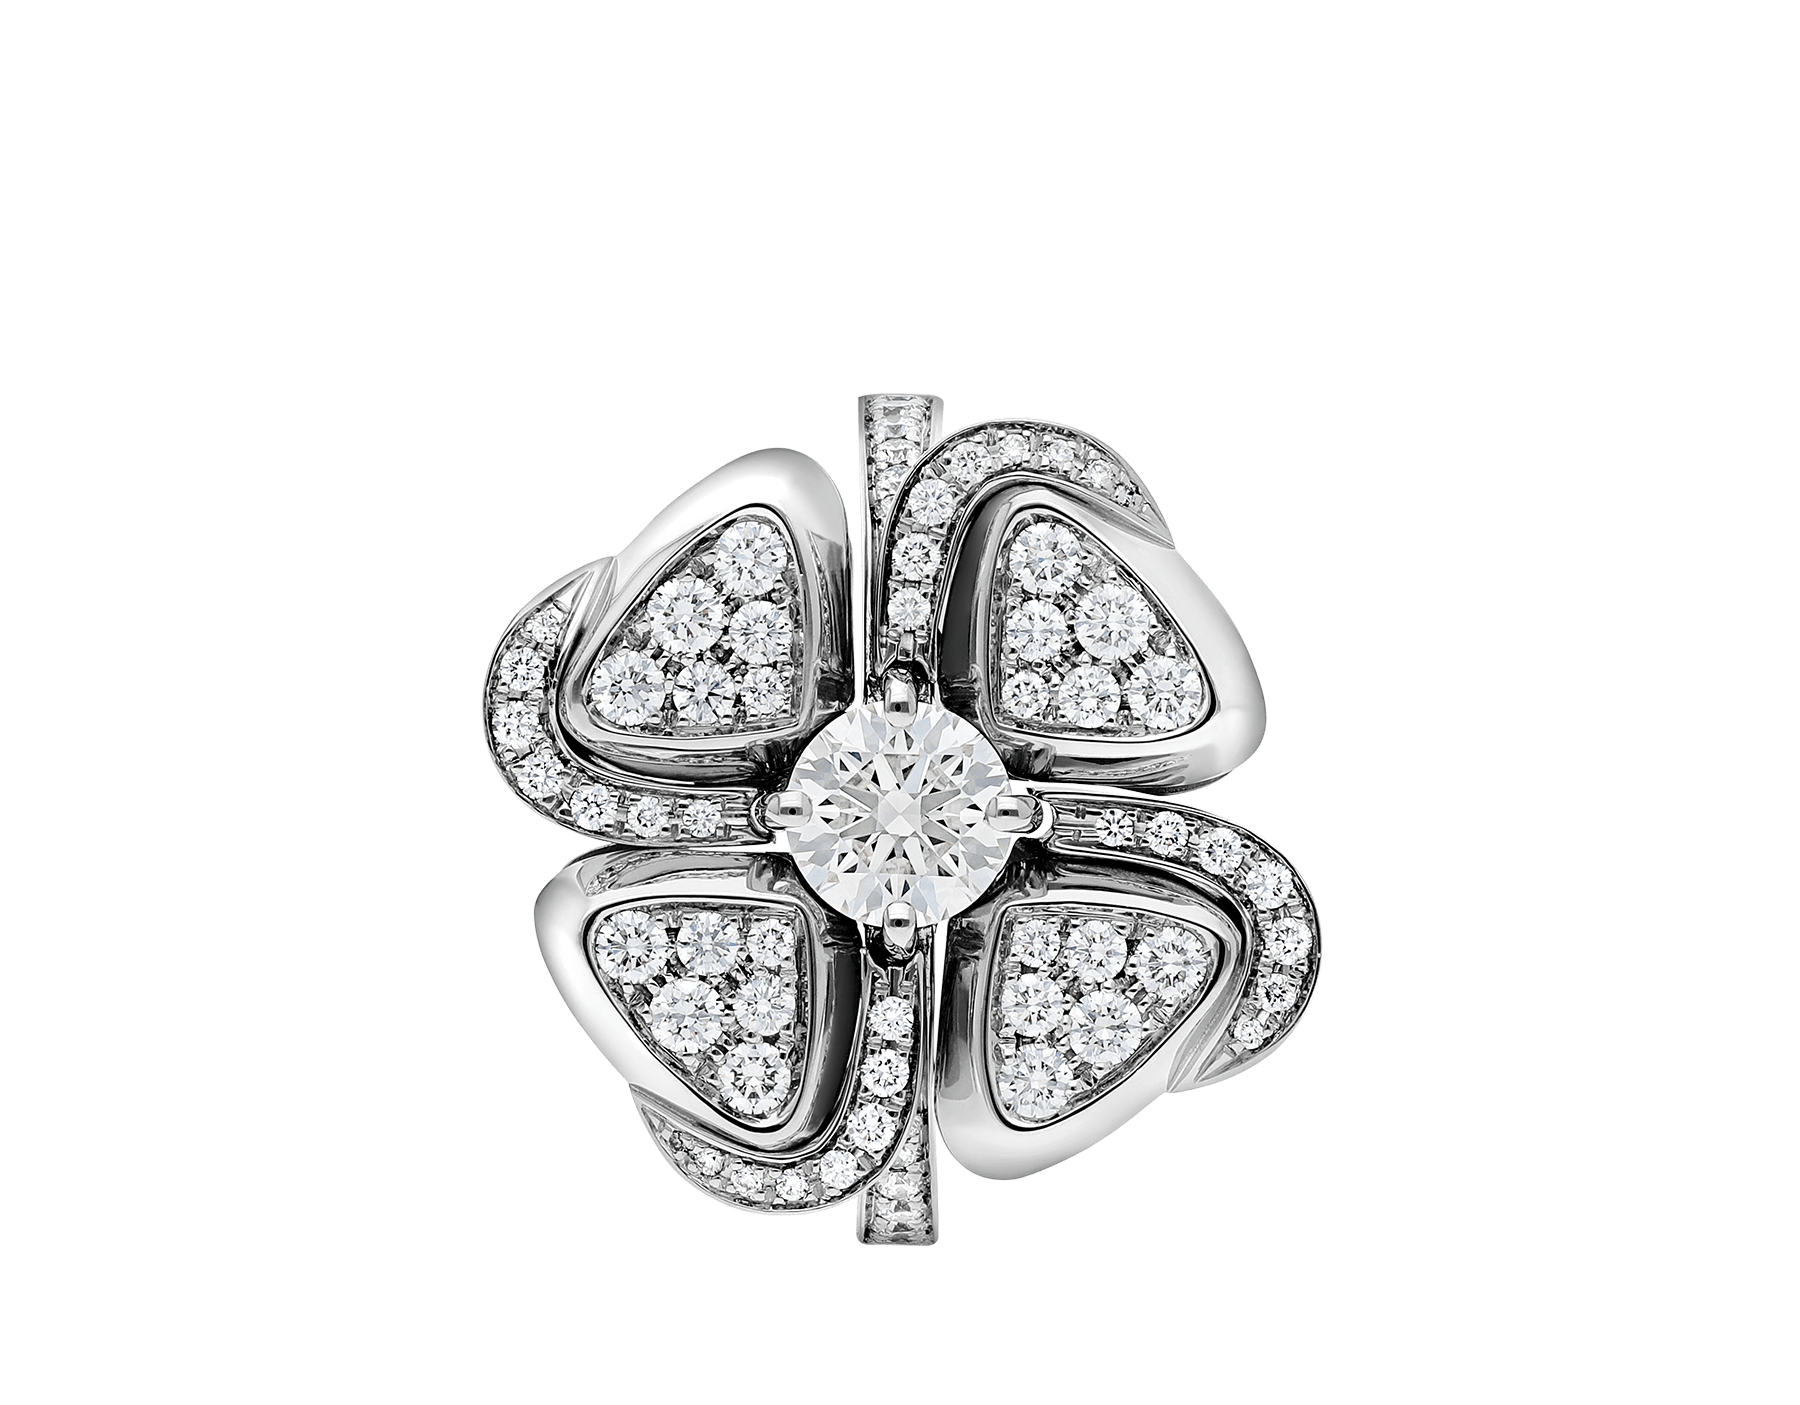 Fiorever 18 kt white gold ring set with a central diamond and pavé diamonds. AN858138 image 2